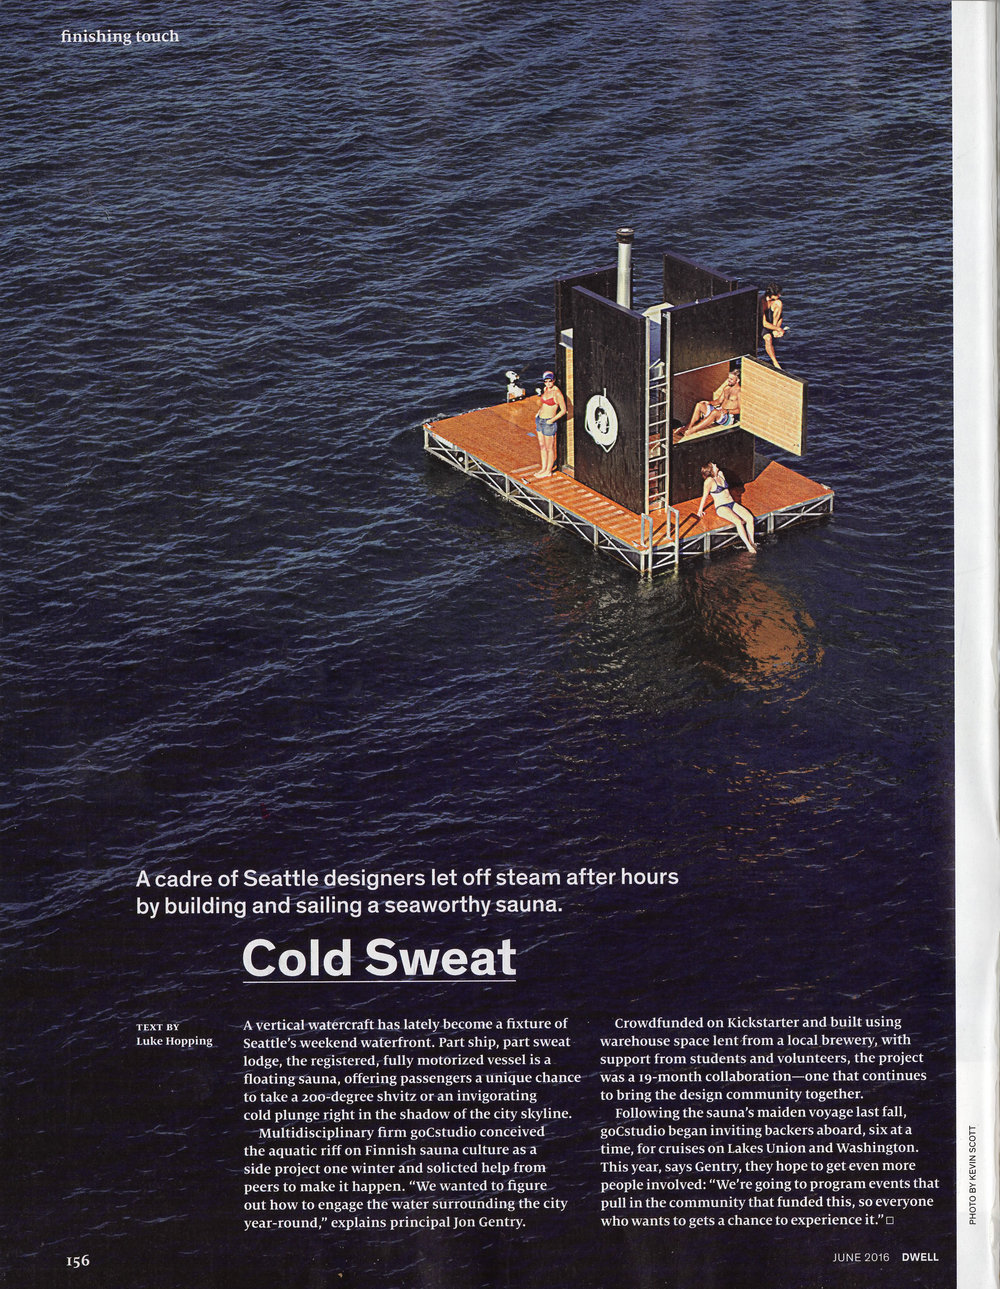 goCstudio_Dwell Spread 1.JPG